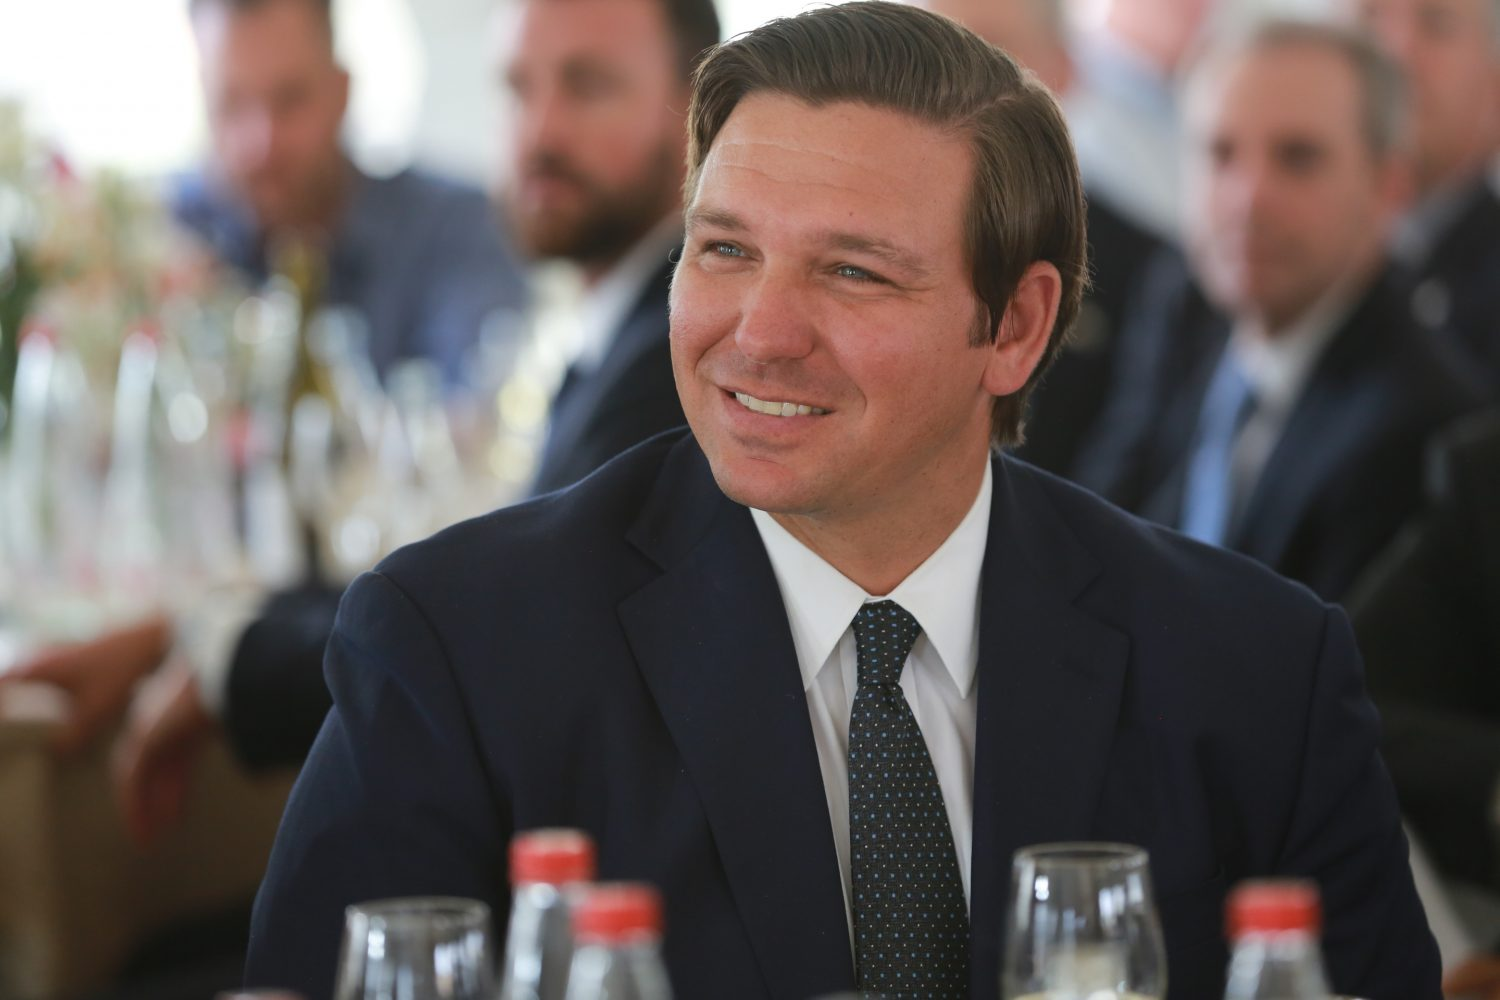 DeSantis backs lifting AIRBNB sanctions